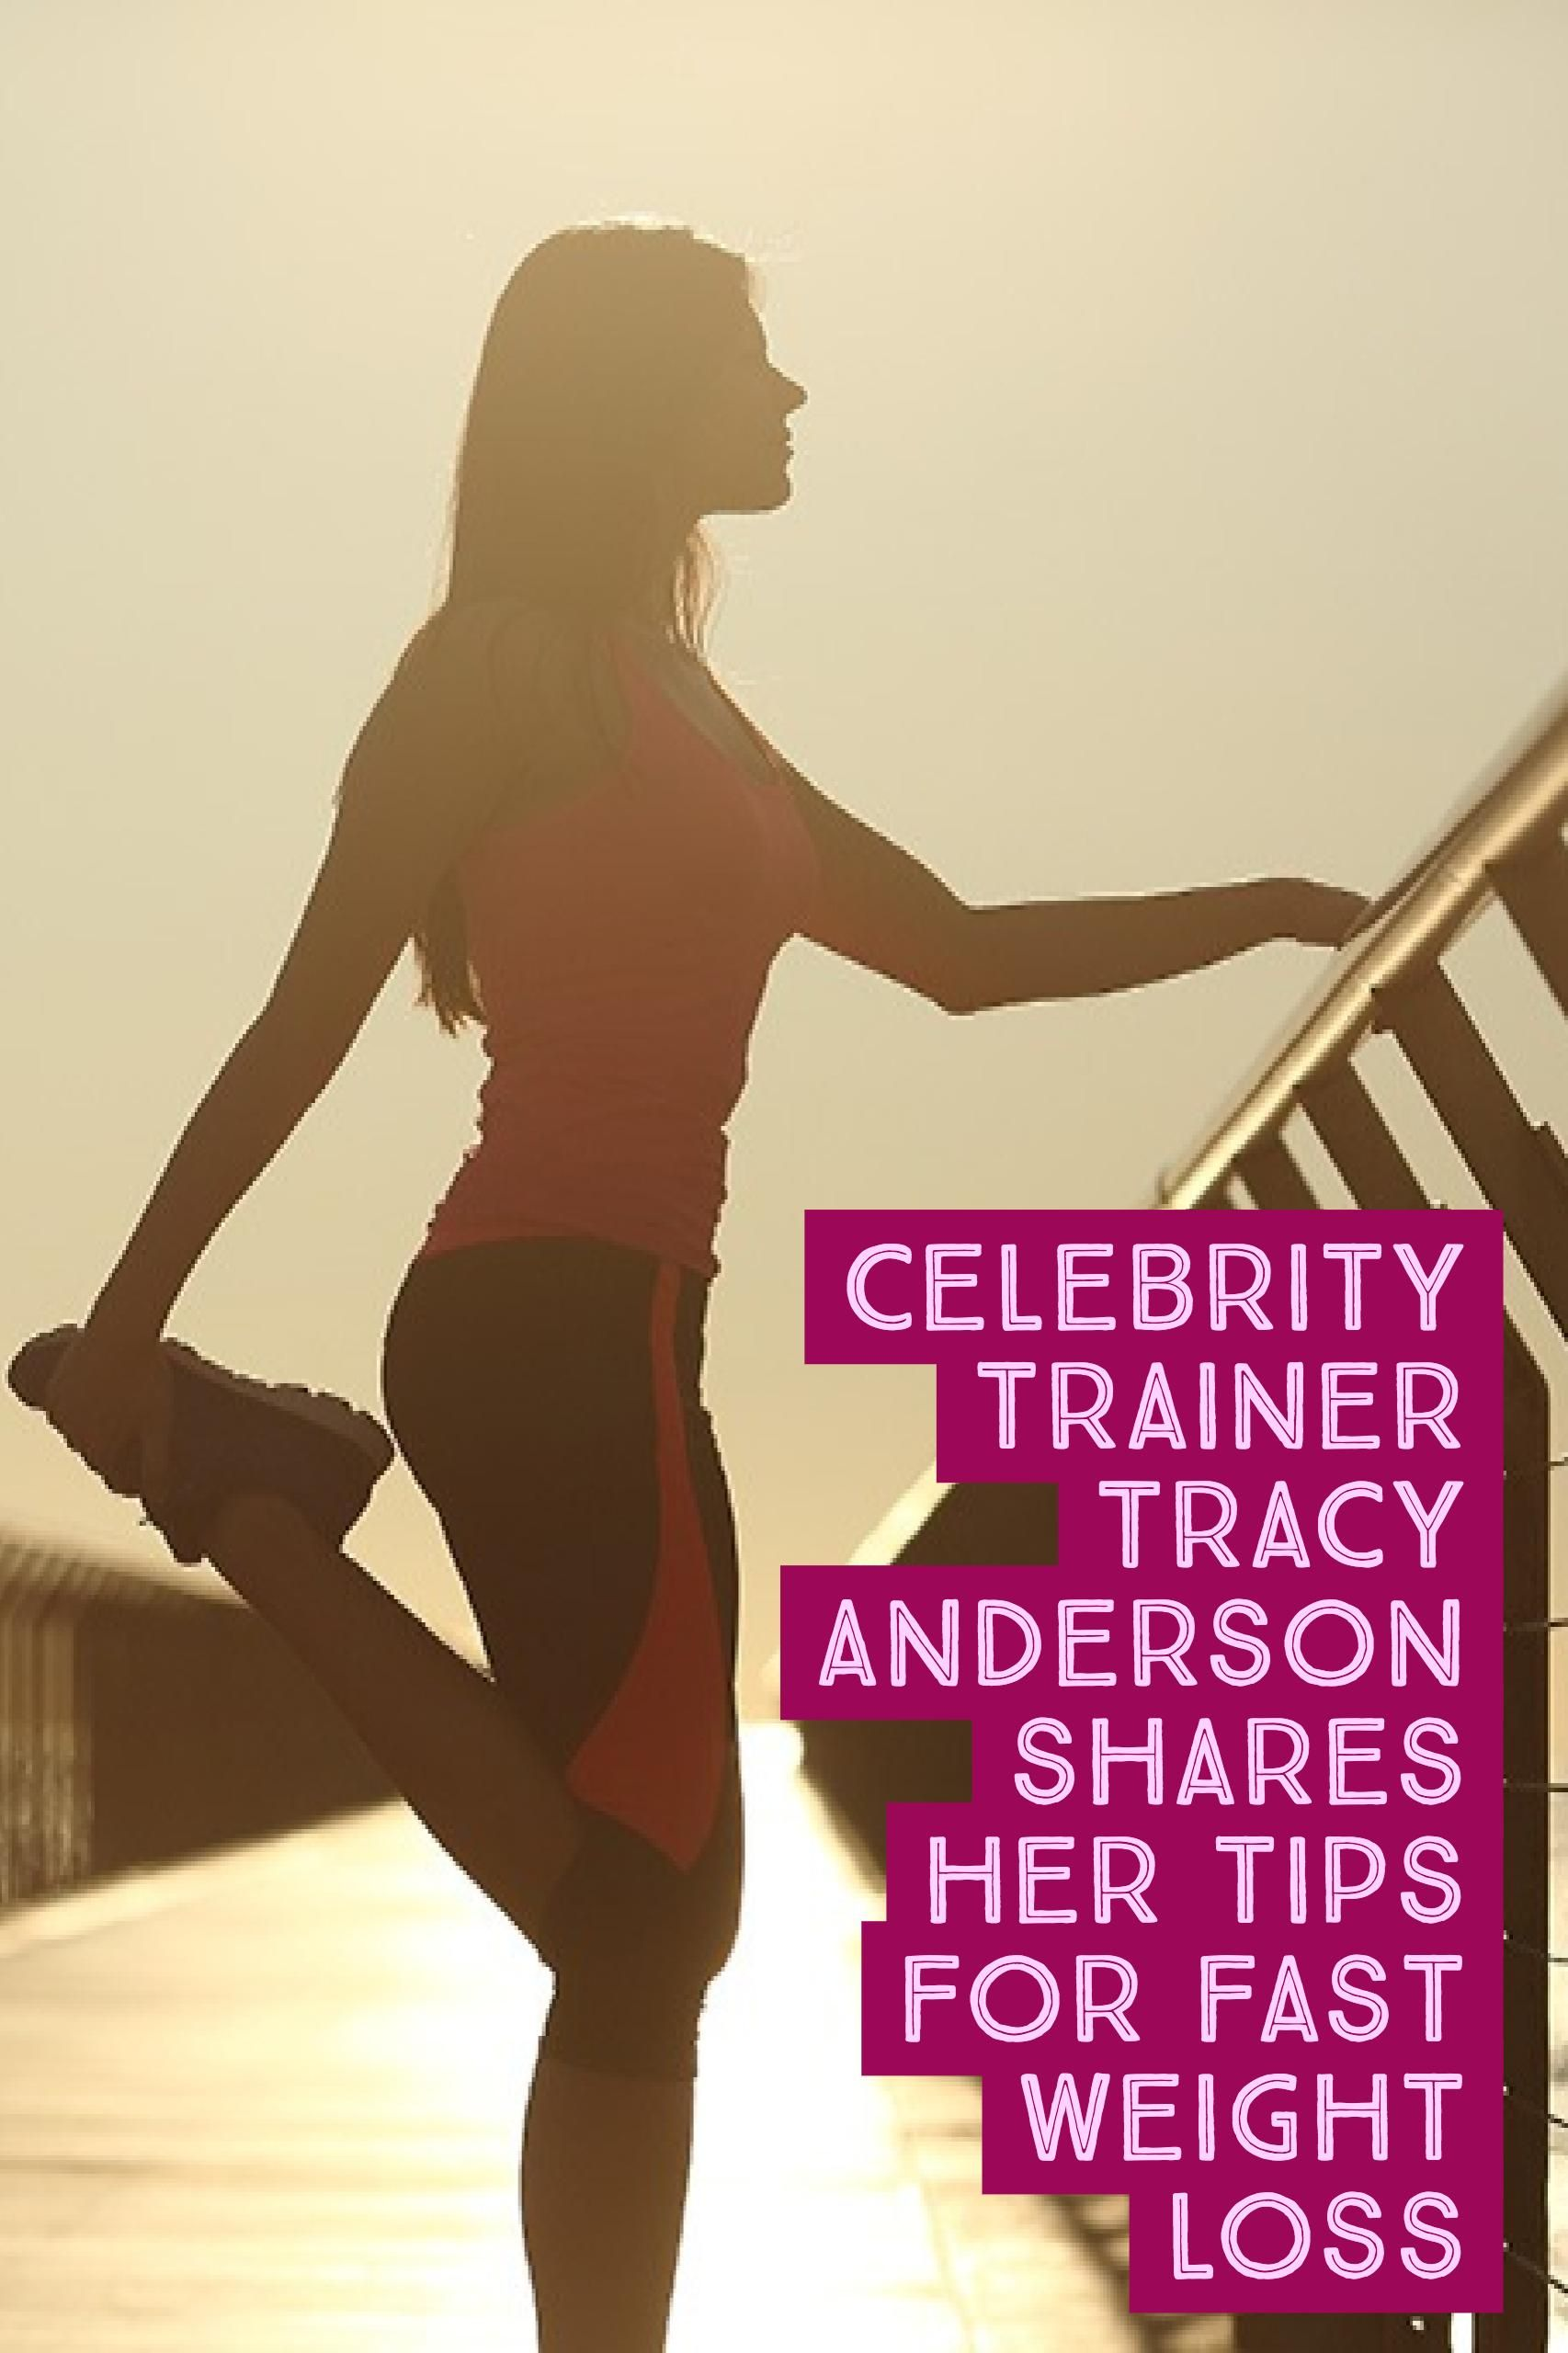 15 Rules from Tracy Anderson for Fast Weight Loss